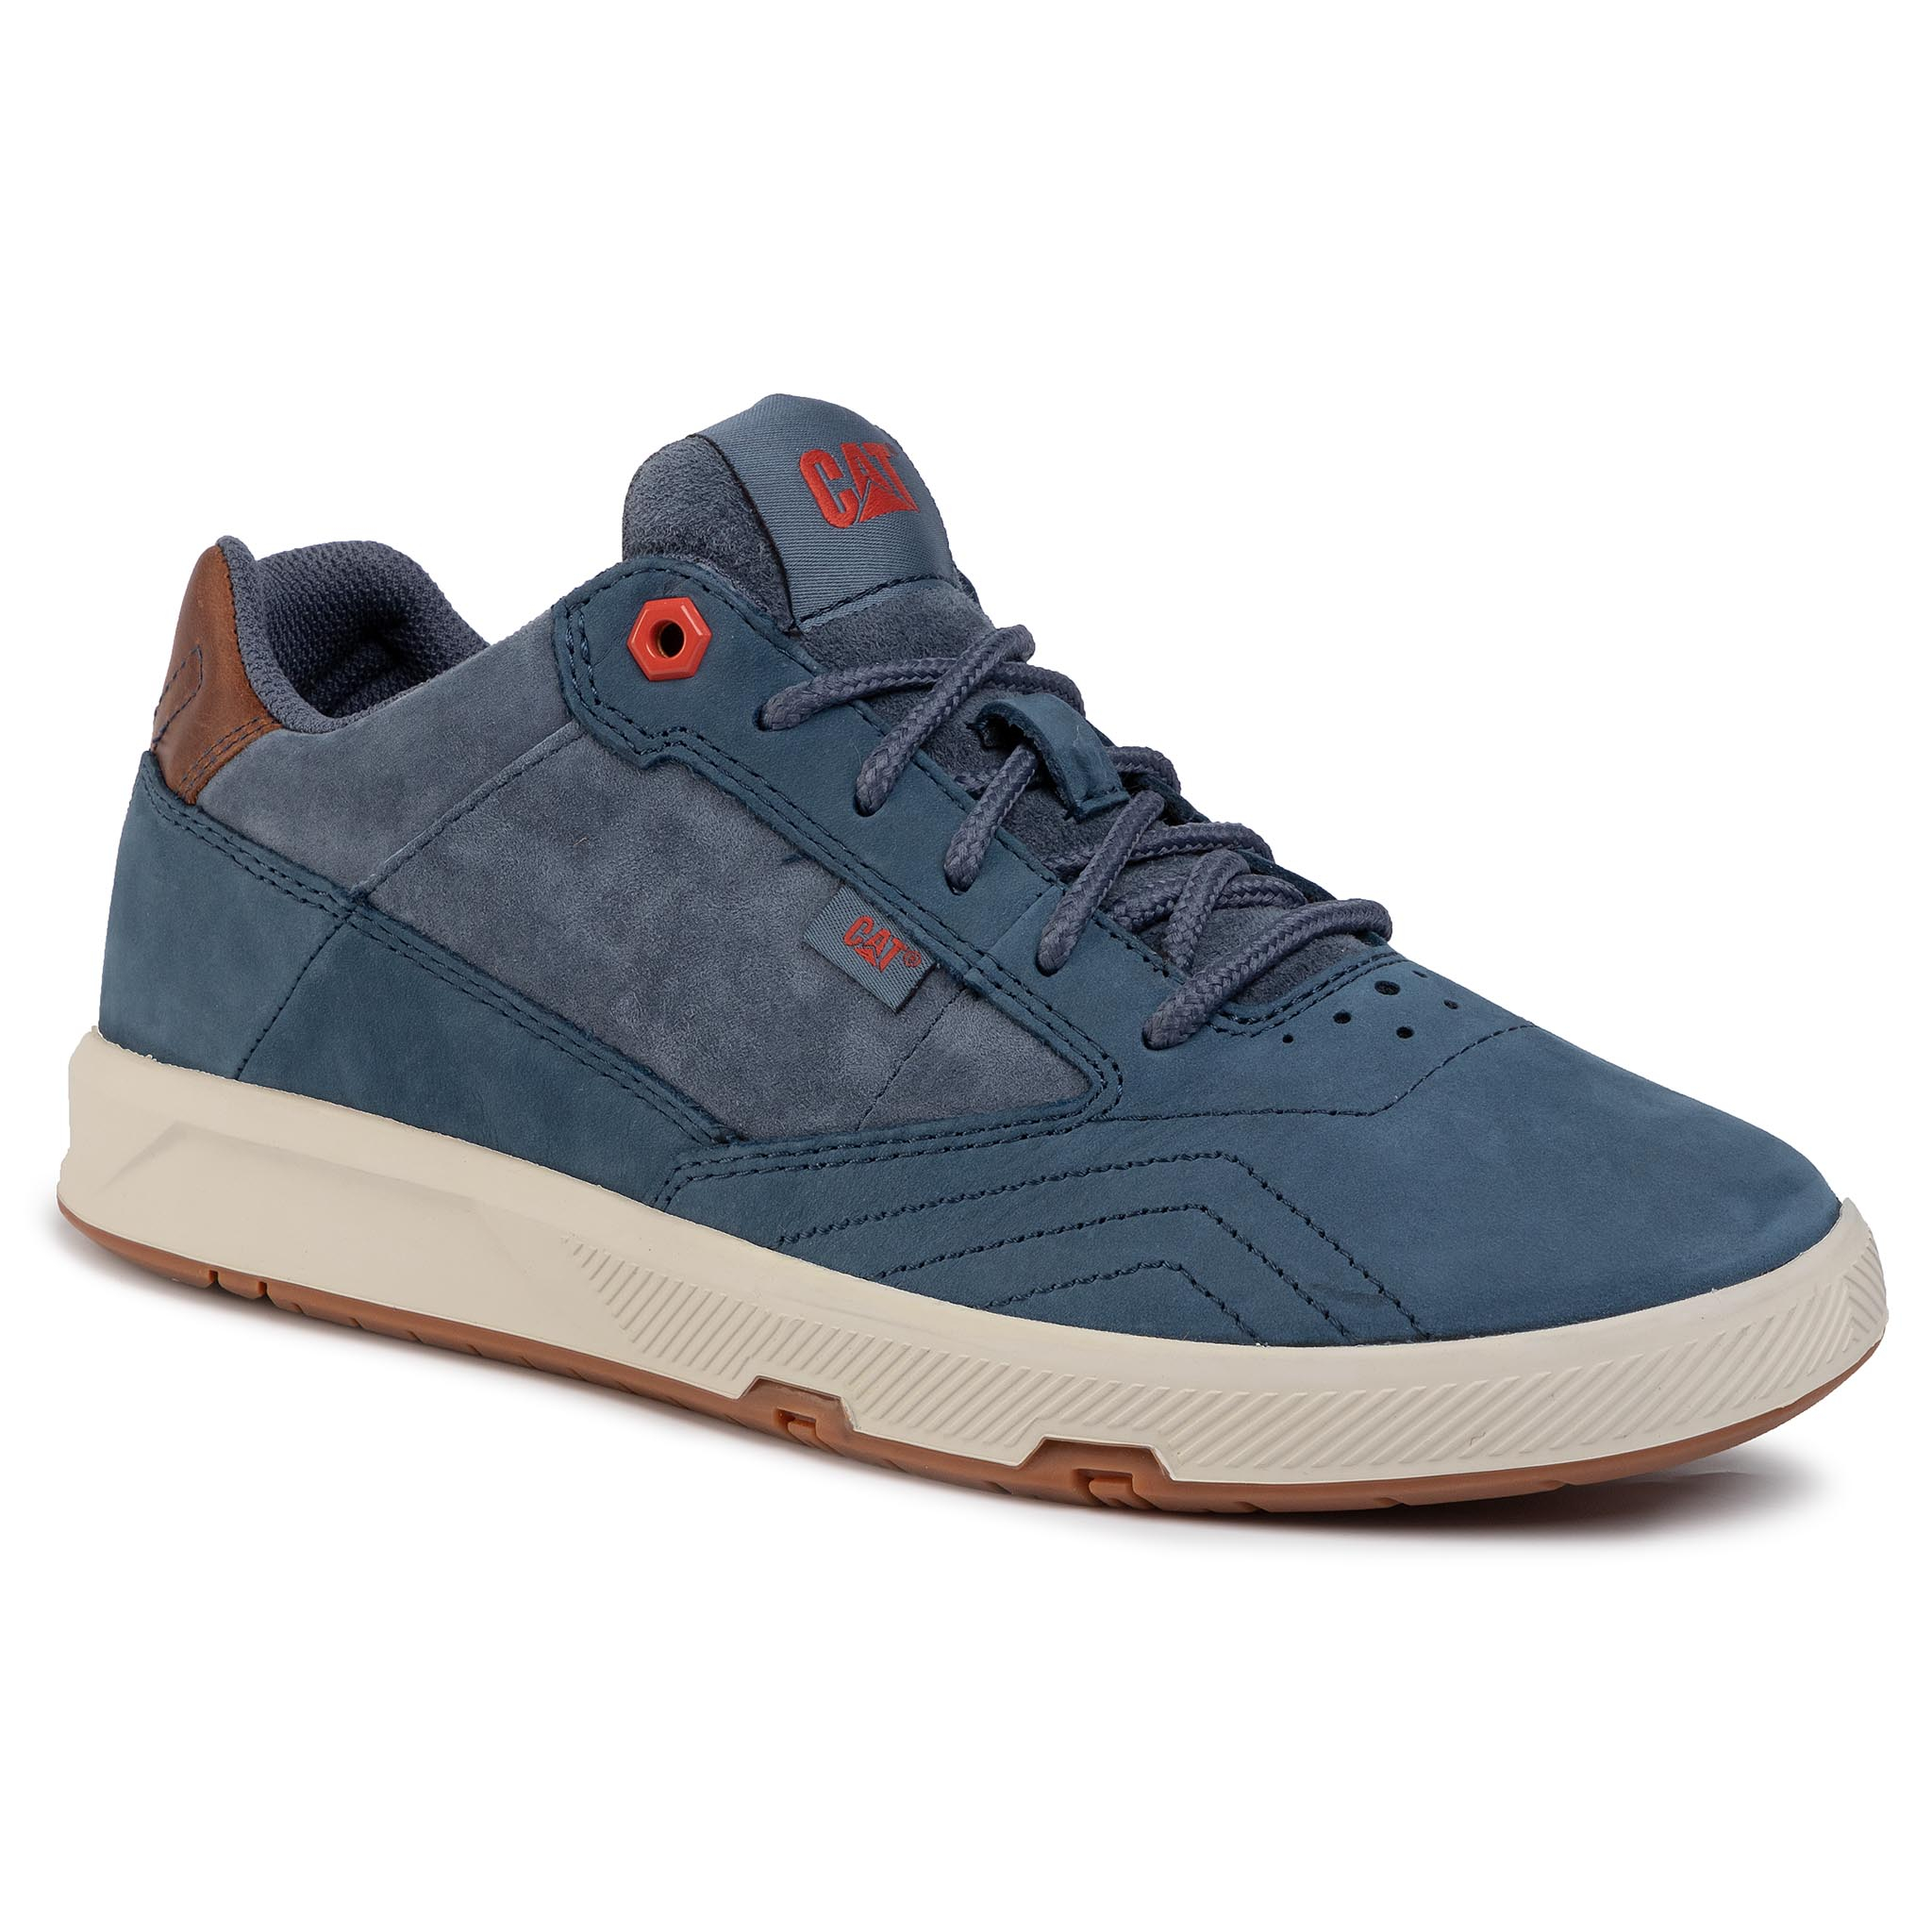 Sneakers CATERPILLAR - Stat P722561 Dk Denim